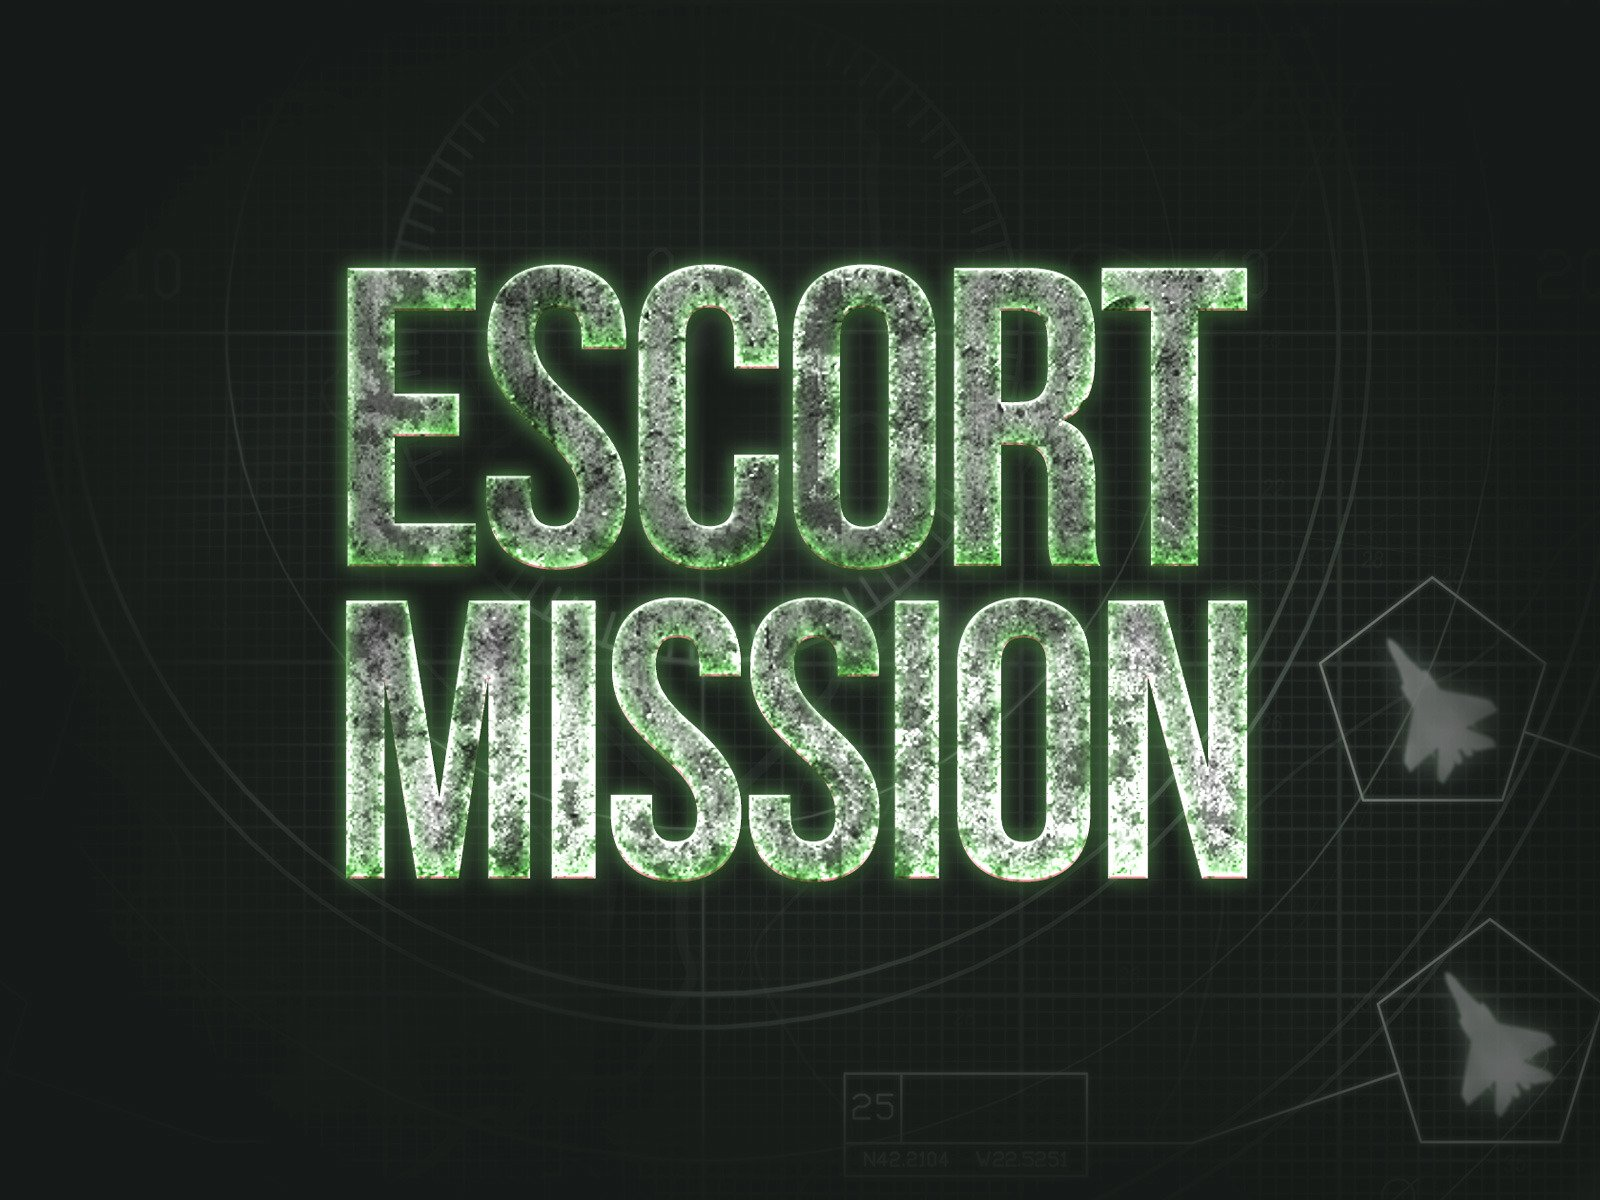 Escort Mission - Season 3